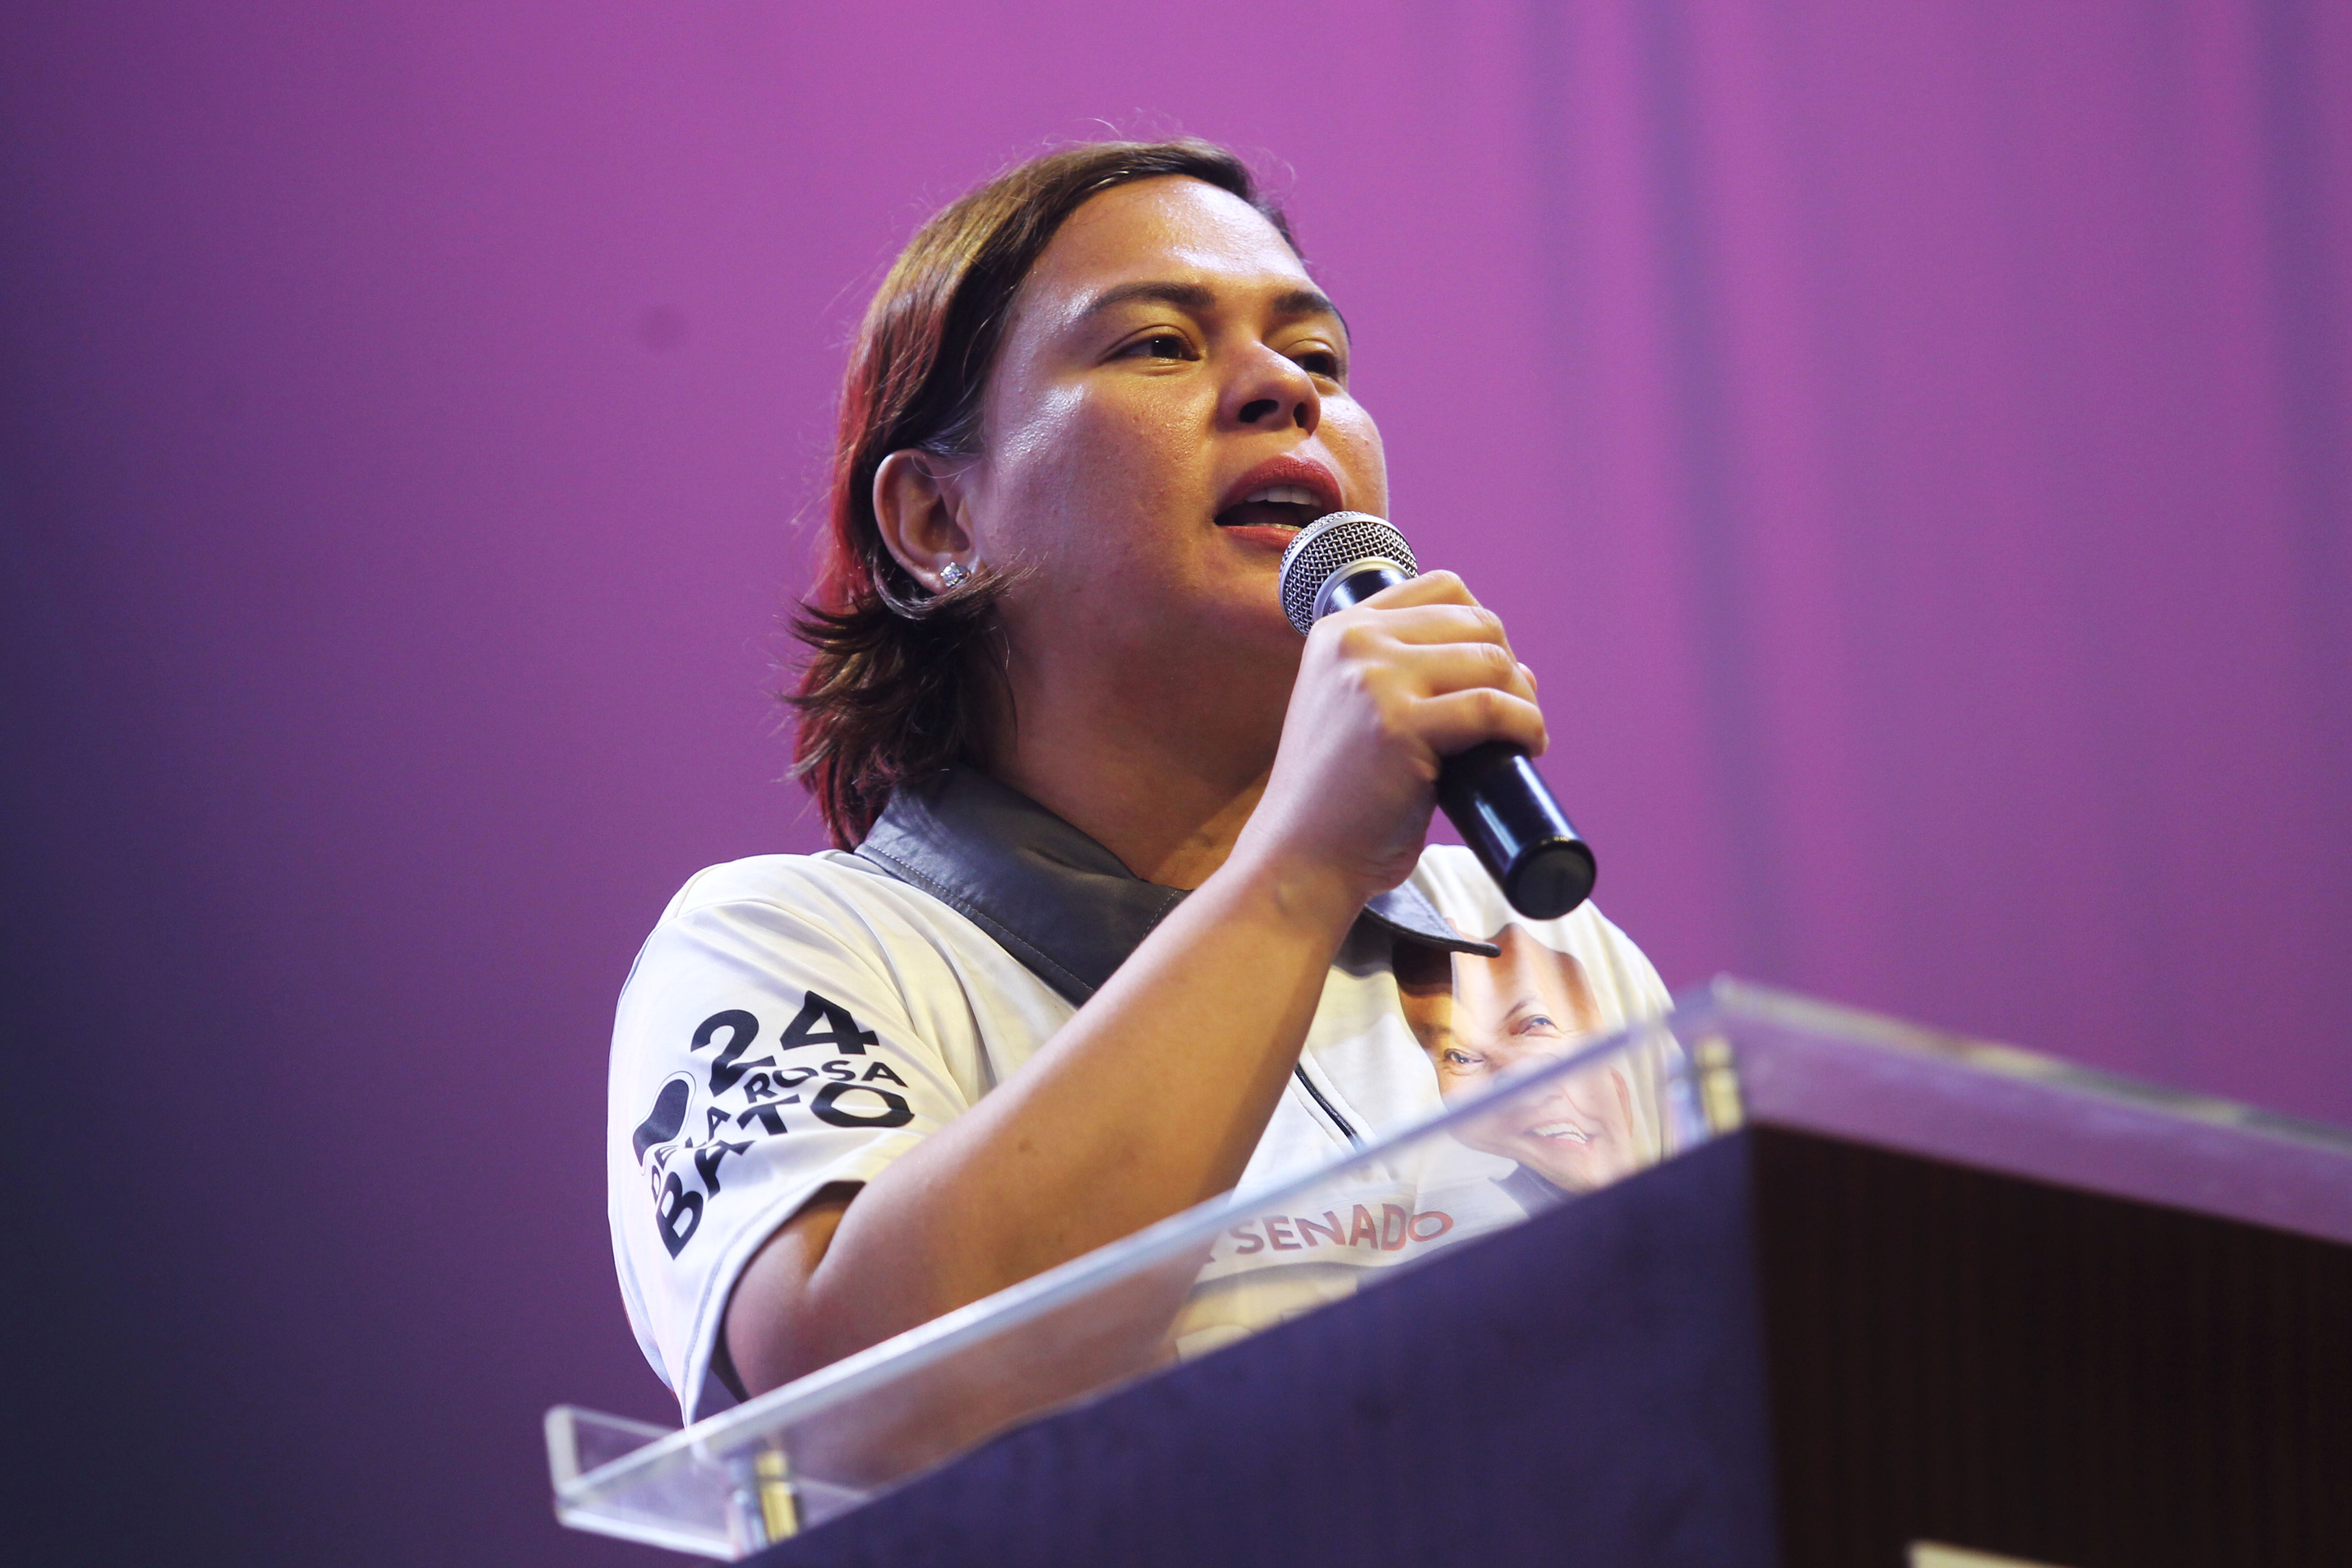 Sara Duterte, Davao City Mayor and daughter of Philippine President Rodrigo Duterte, delivers a speech during a senatorial campaign caravan for Hugpong Ng Pagbabago (HNP) in Davao City, southern Philippines on May 9, 2019. HNP is a regional political party chaired by Sara Duterte. Picture taken May 9, 2019 . REUTERS/Lean Daval Jr